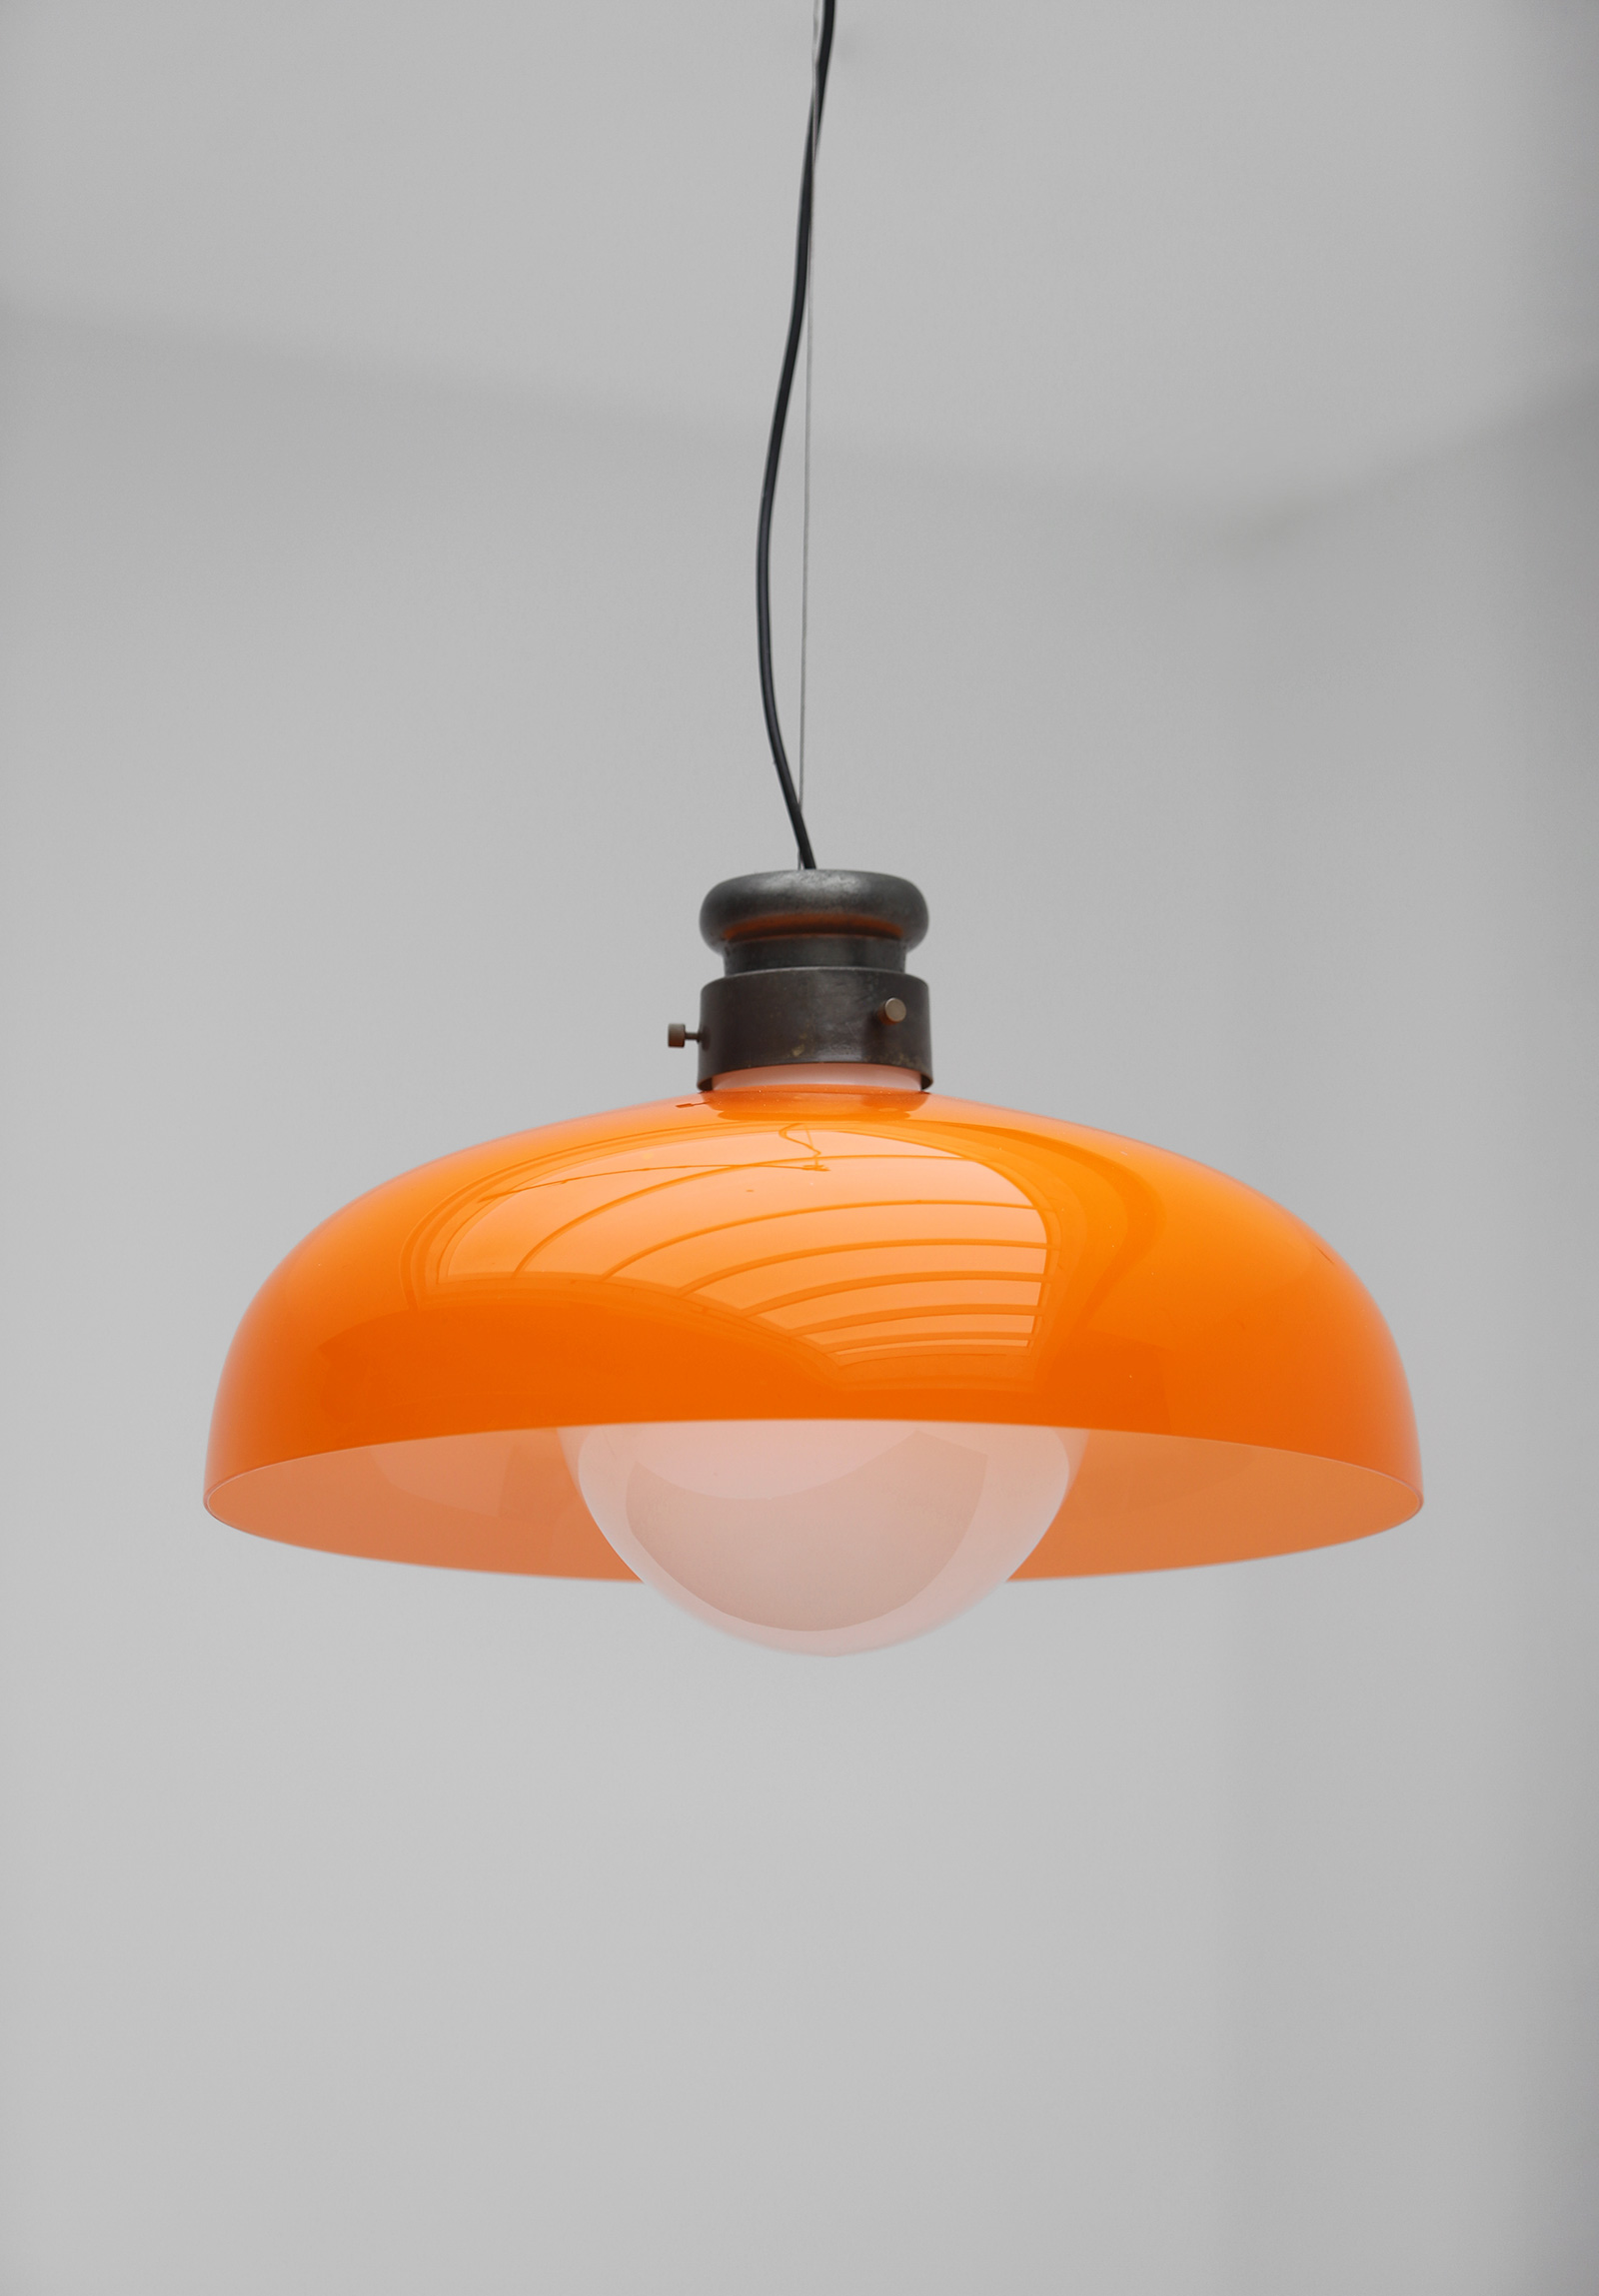 Pendant Lamp by Alessandro Pianon for Vistosiimage 2